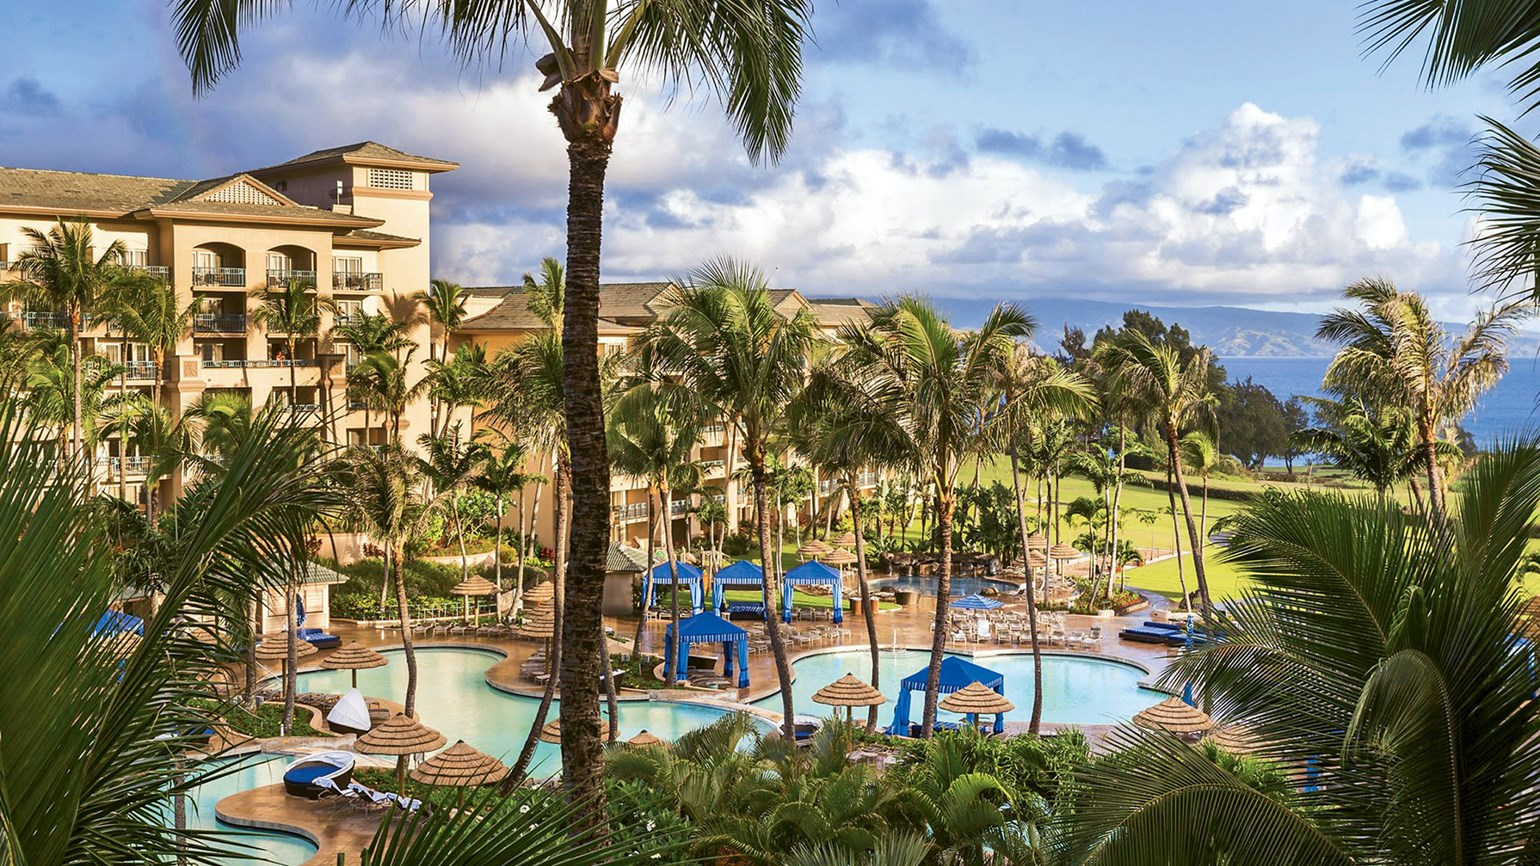 Ritz-Carlton, Kapalua: At 25, updates abound